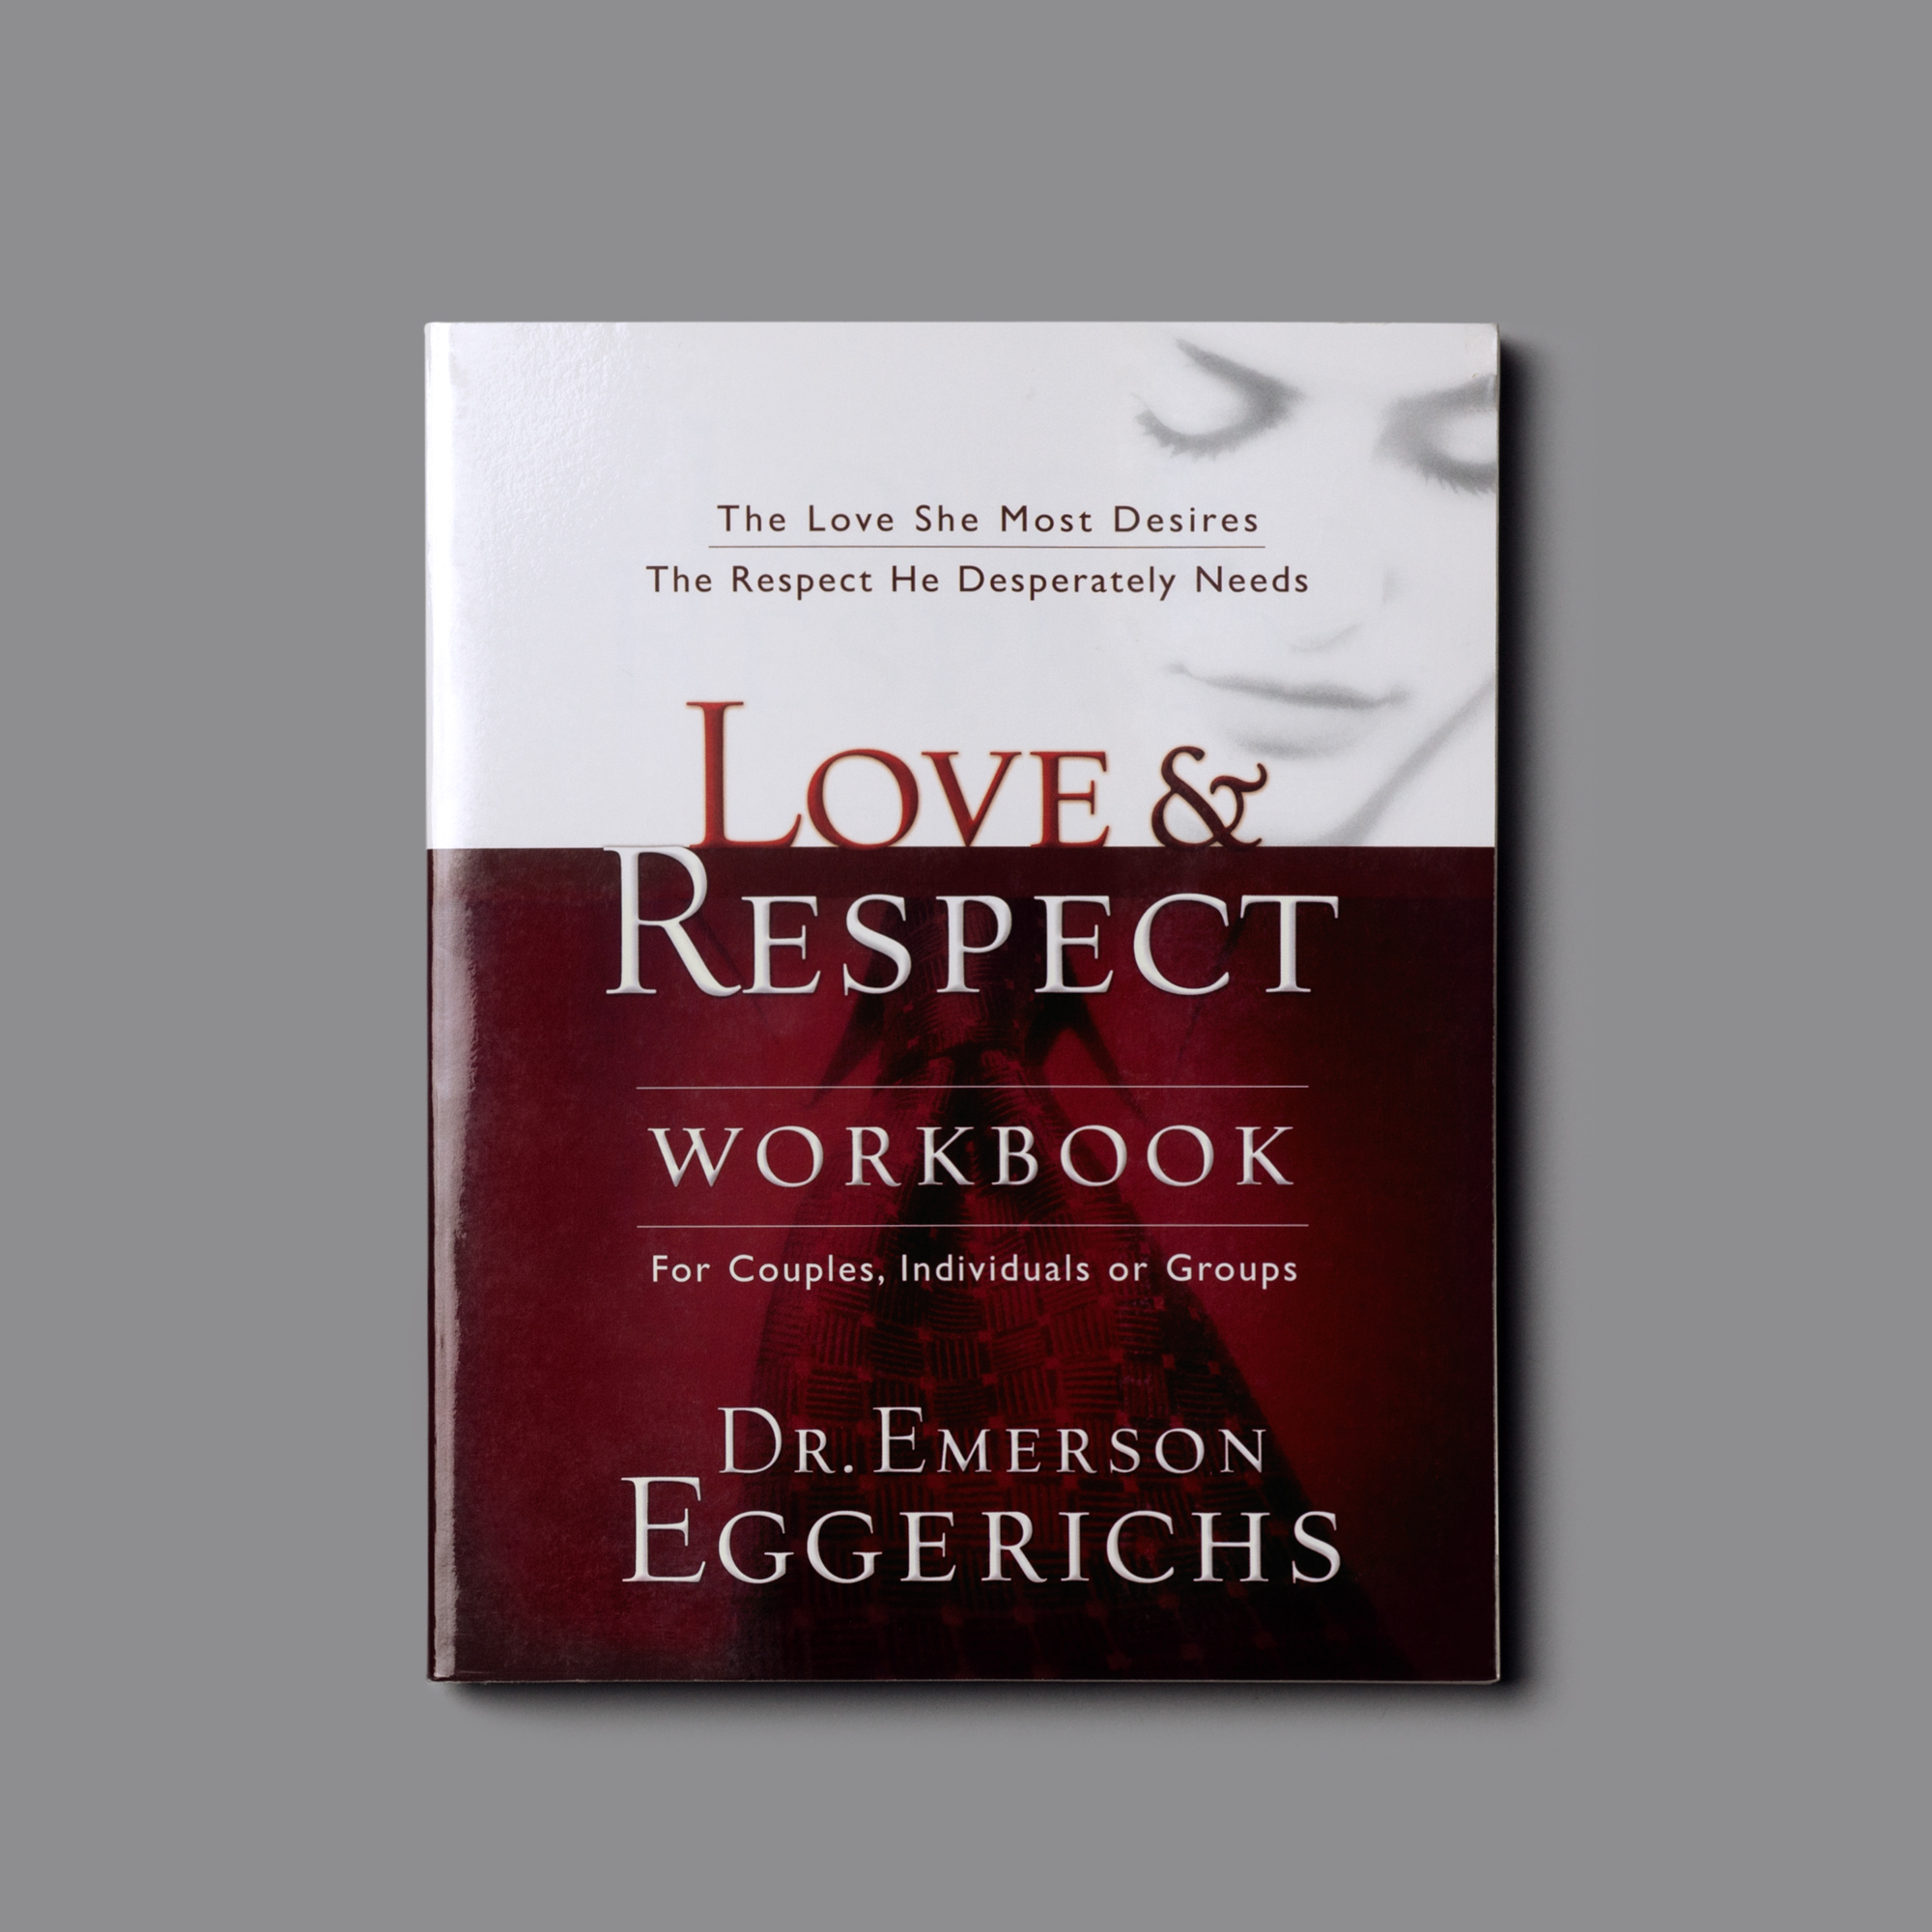 Workbook for Love & Respect Book - Using Dr. Eggerichs' breakthrough techniques and the exercises and questions within these pages, couples nationwide are achieving a brand-new level of intimacy and learning how to: Stop the Crazy Cycle of conflict; Initiate the Energizing Cycle of change; Enjoy the Rewarded Cycle of new passion. And if you'll take this biblically based counsel to heart, your relationship could be next!